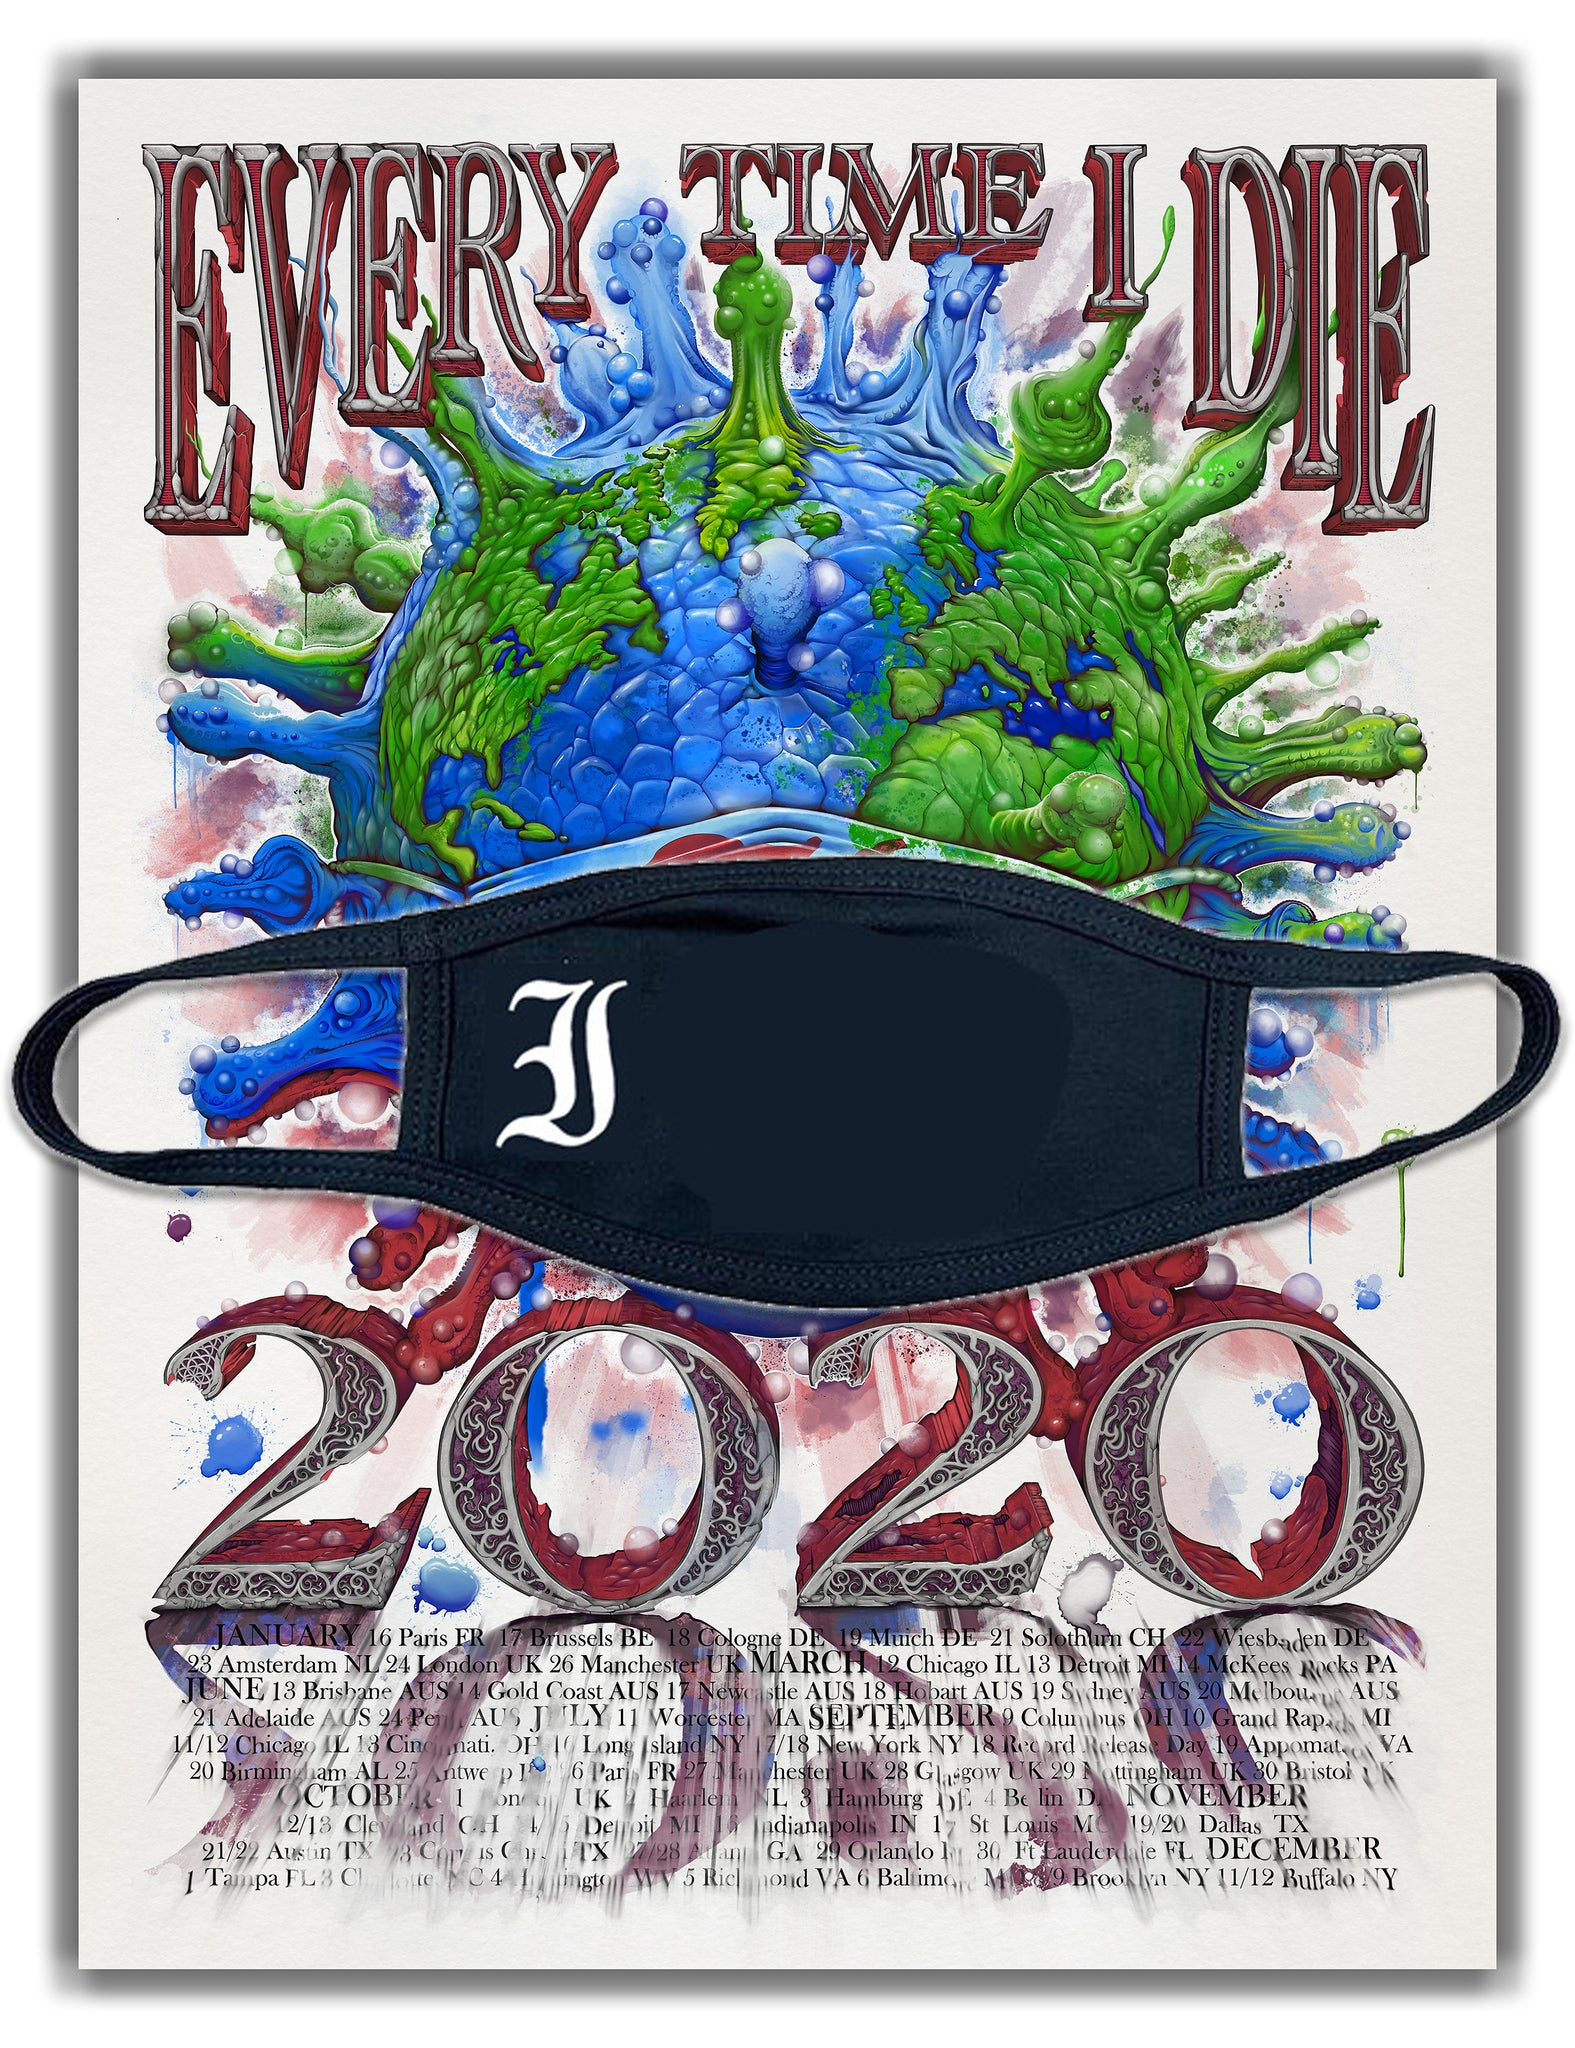 EVERY TIME I DIE 2020 World Tour bundle